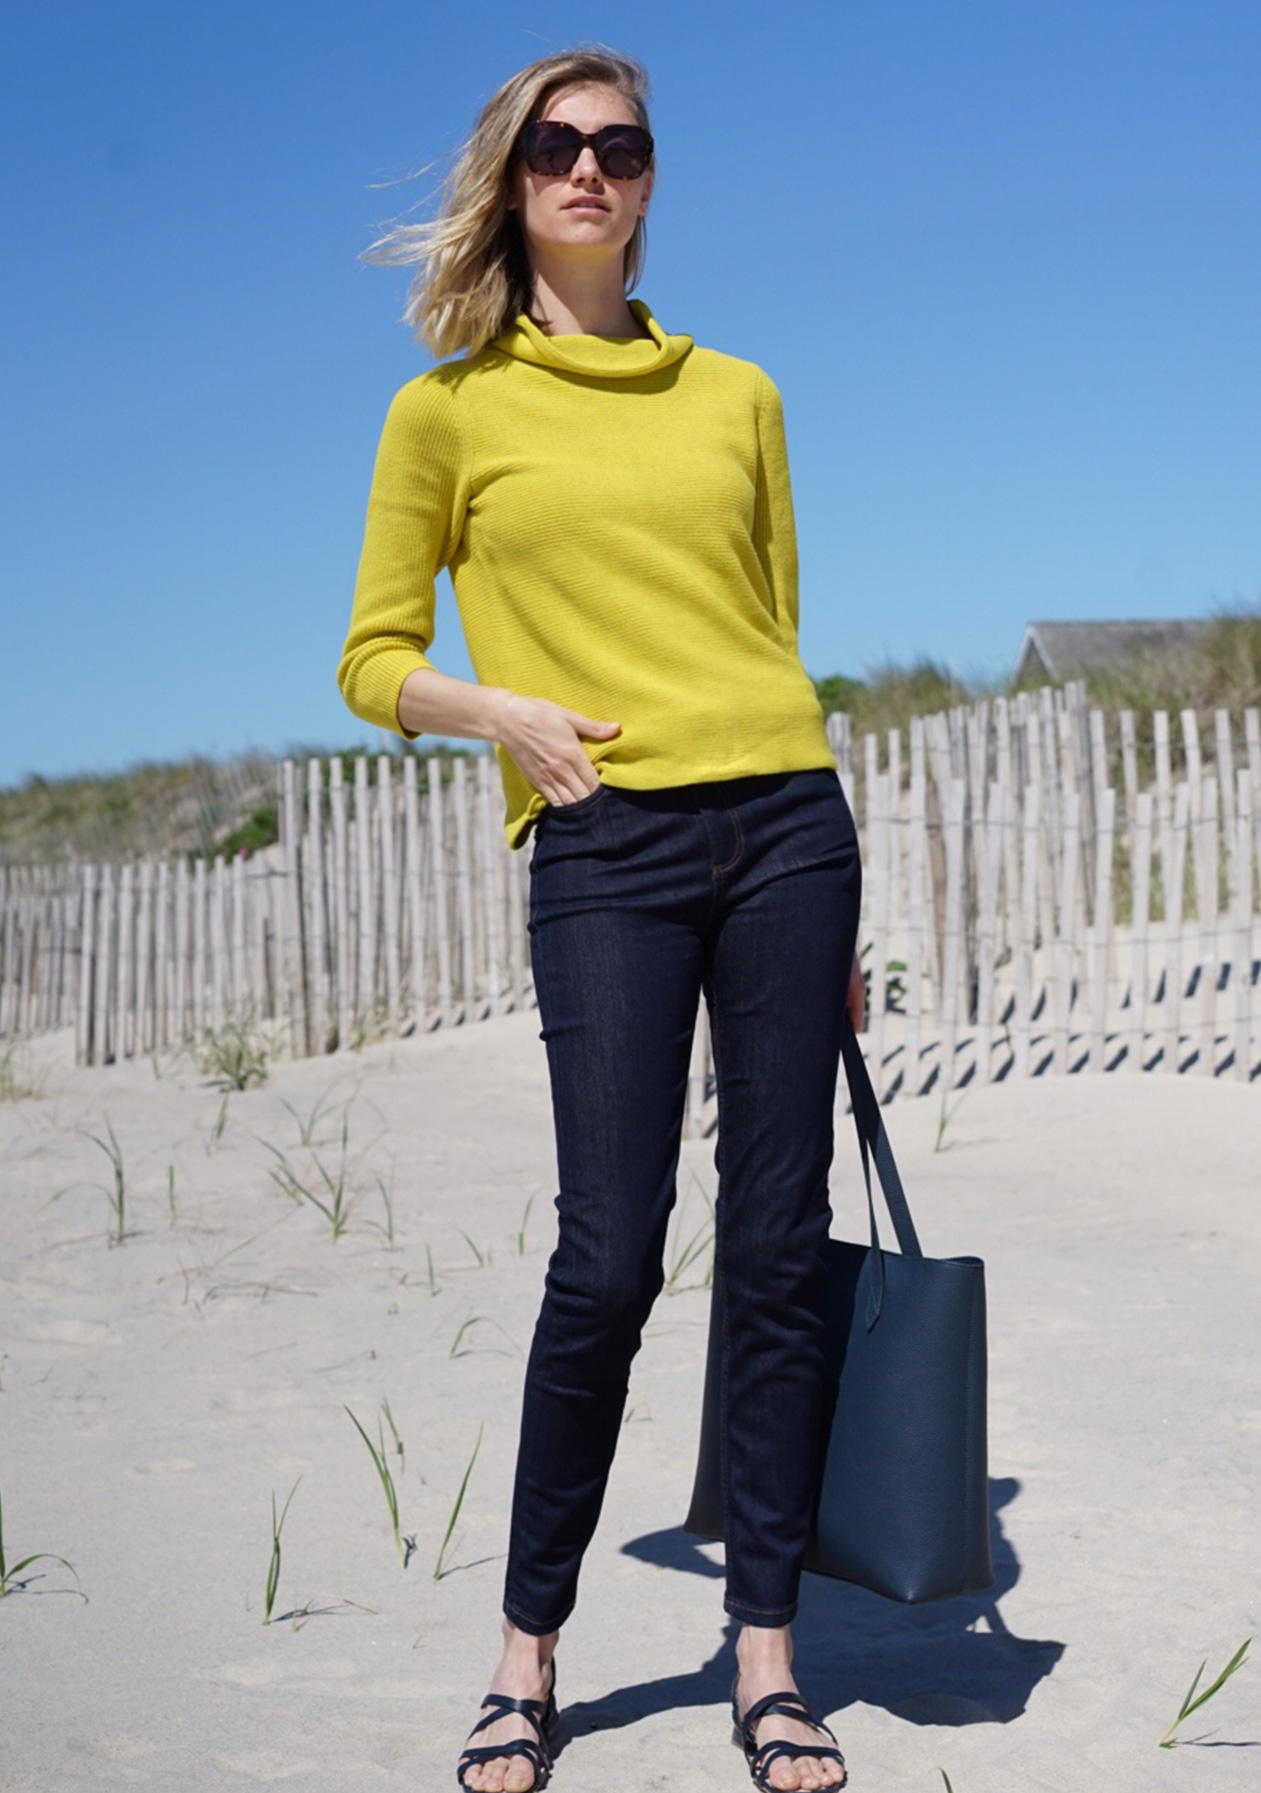 A blonde woman stands on a beach in a yellow roll neck jumper with dark denim jeans, sandals and a navy blue leather tote bags